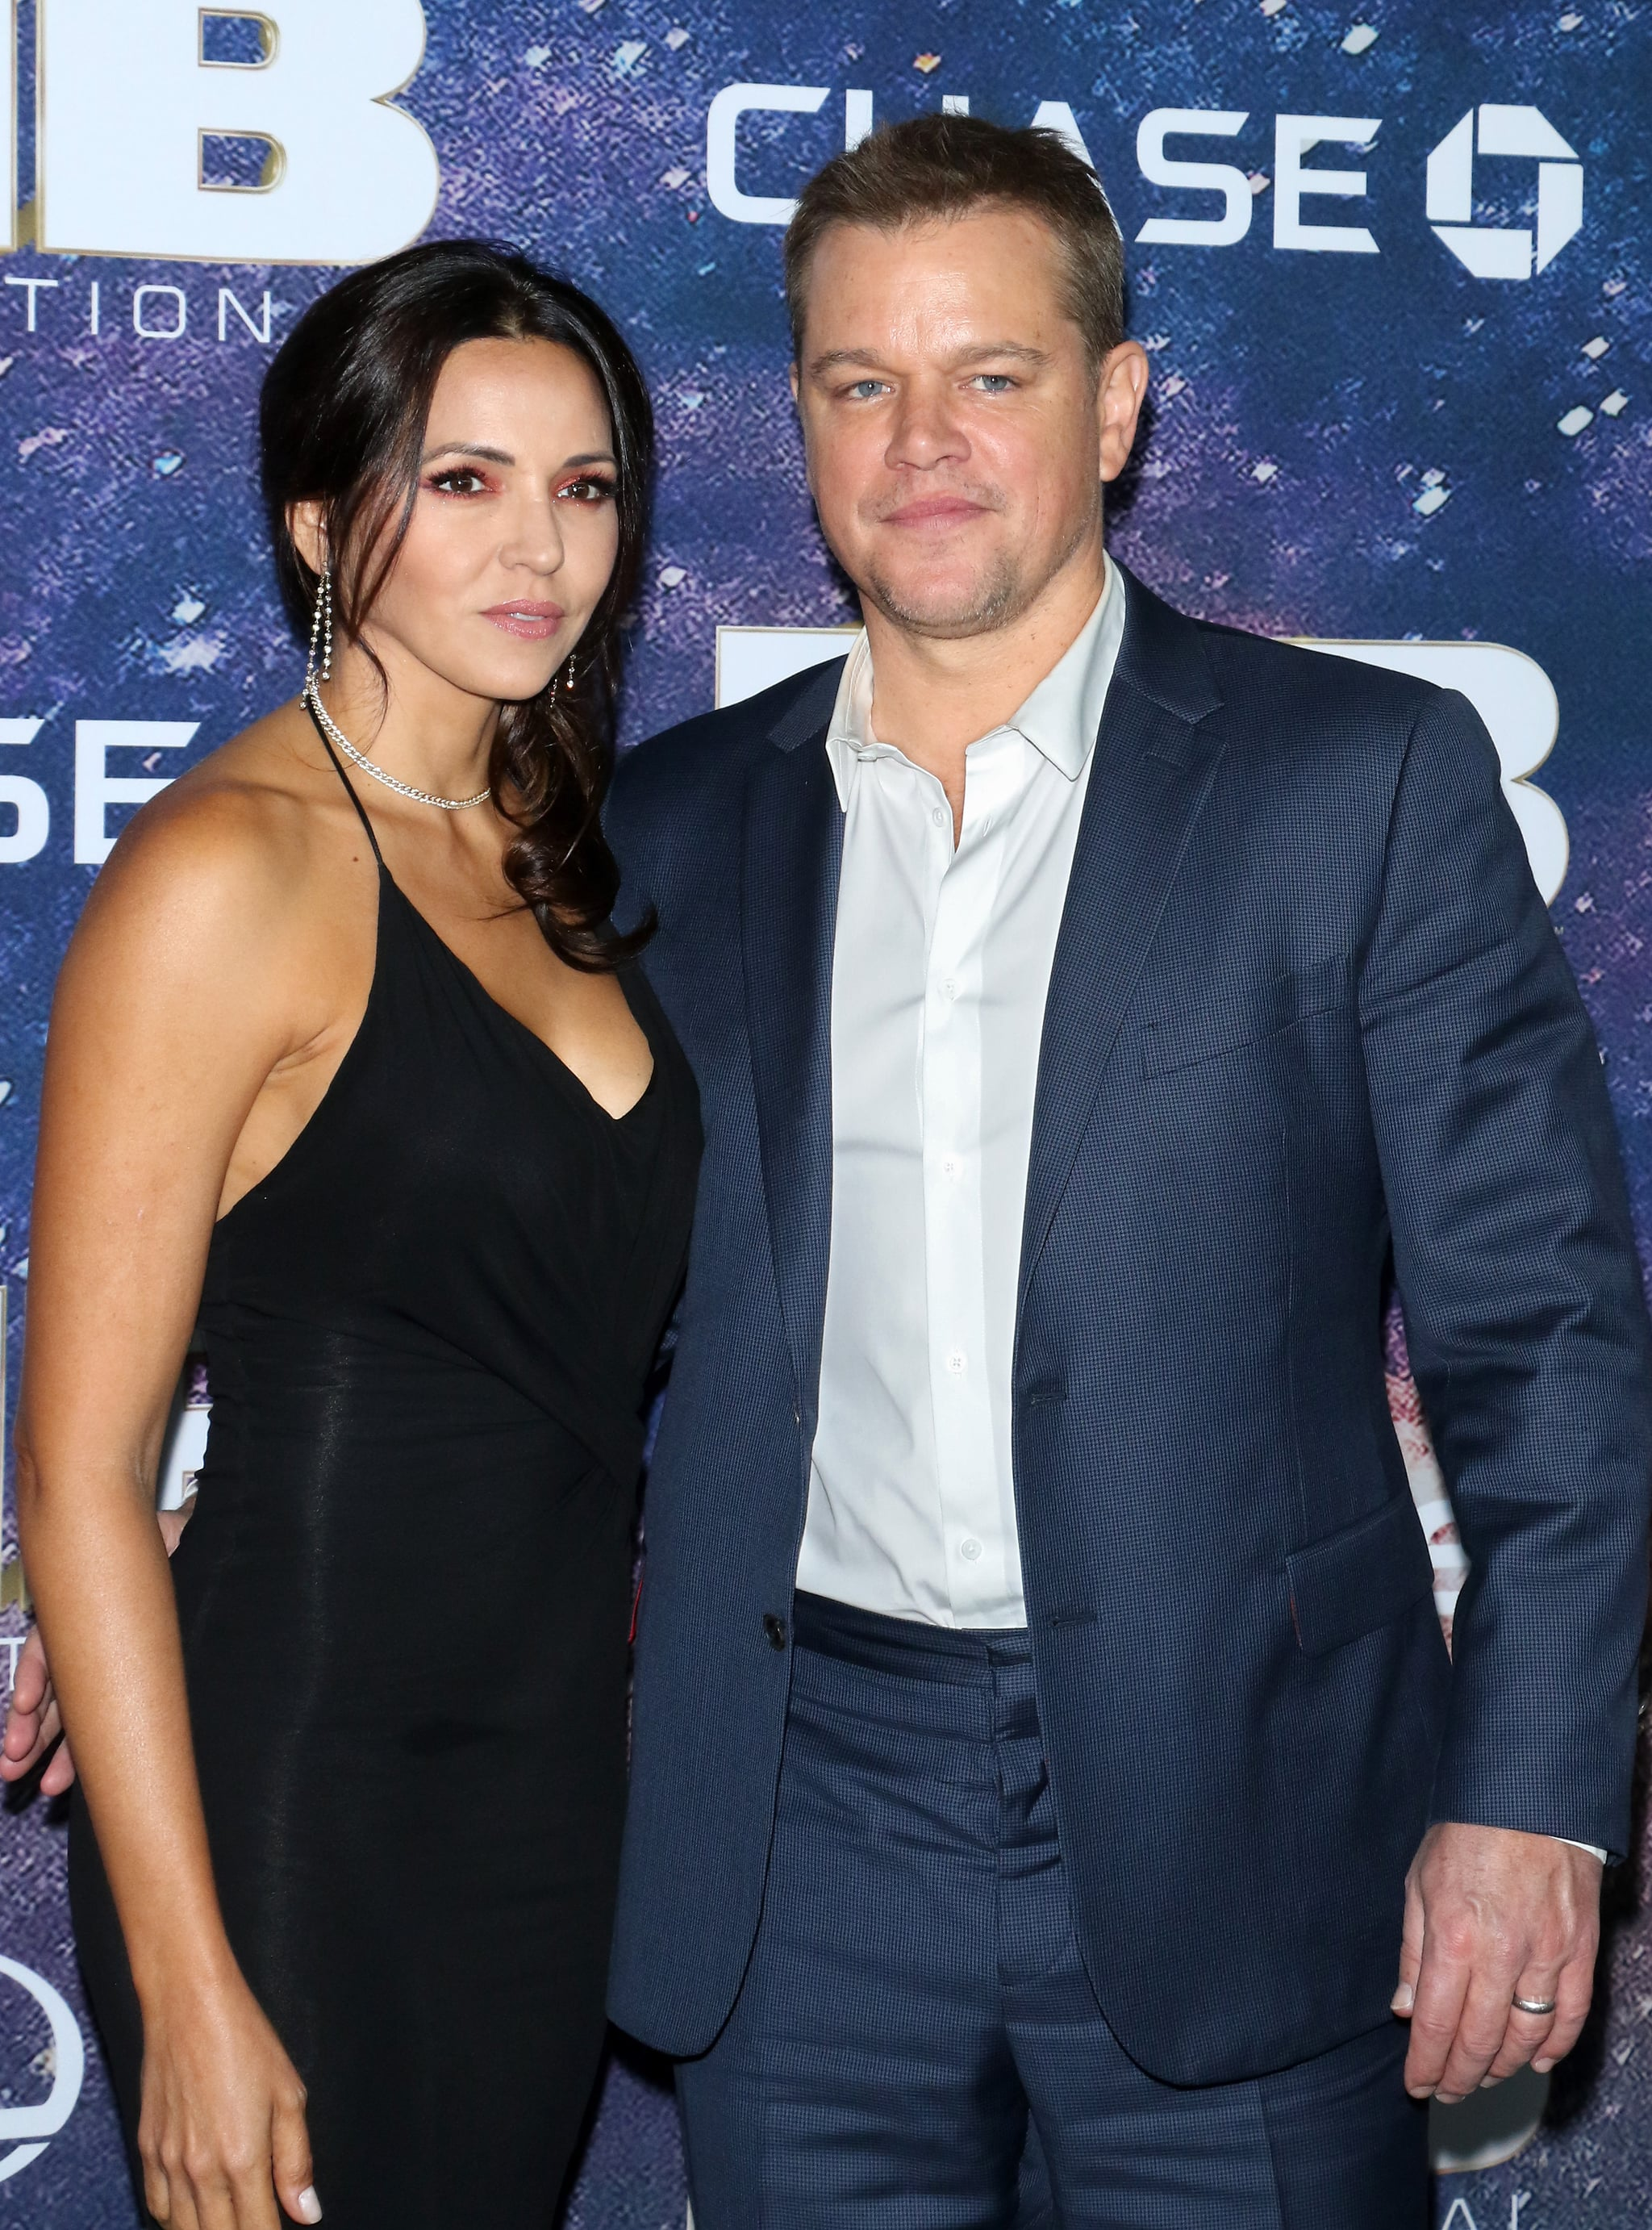 NEW YORK, NEW YORK - JUNE 11: Luciana Barroso and actor Matt Damon attend